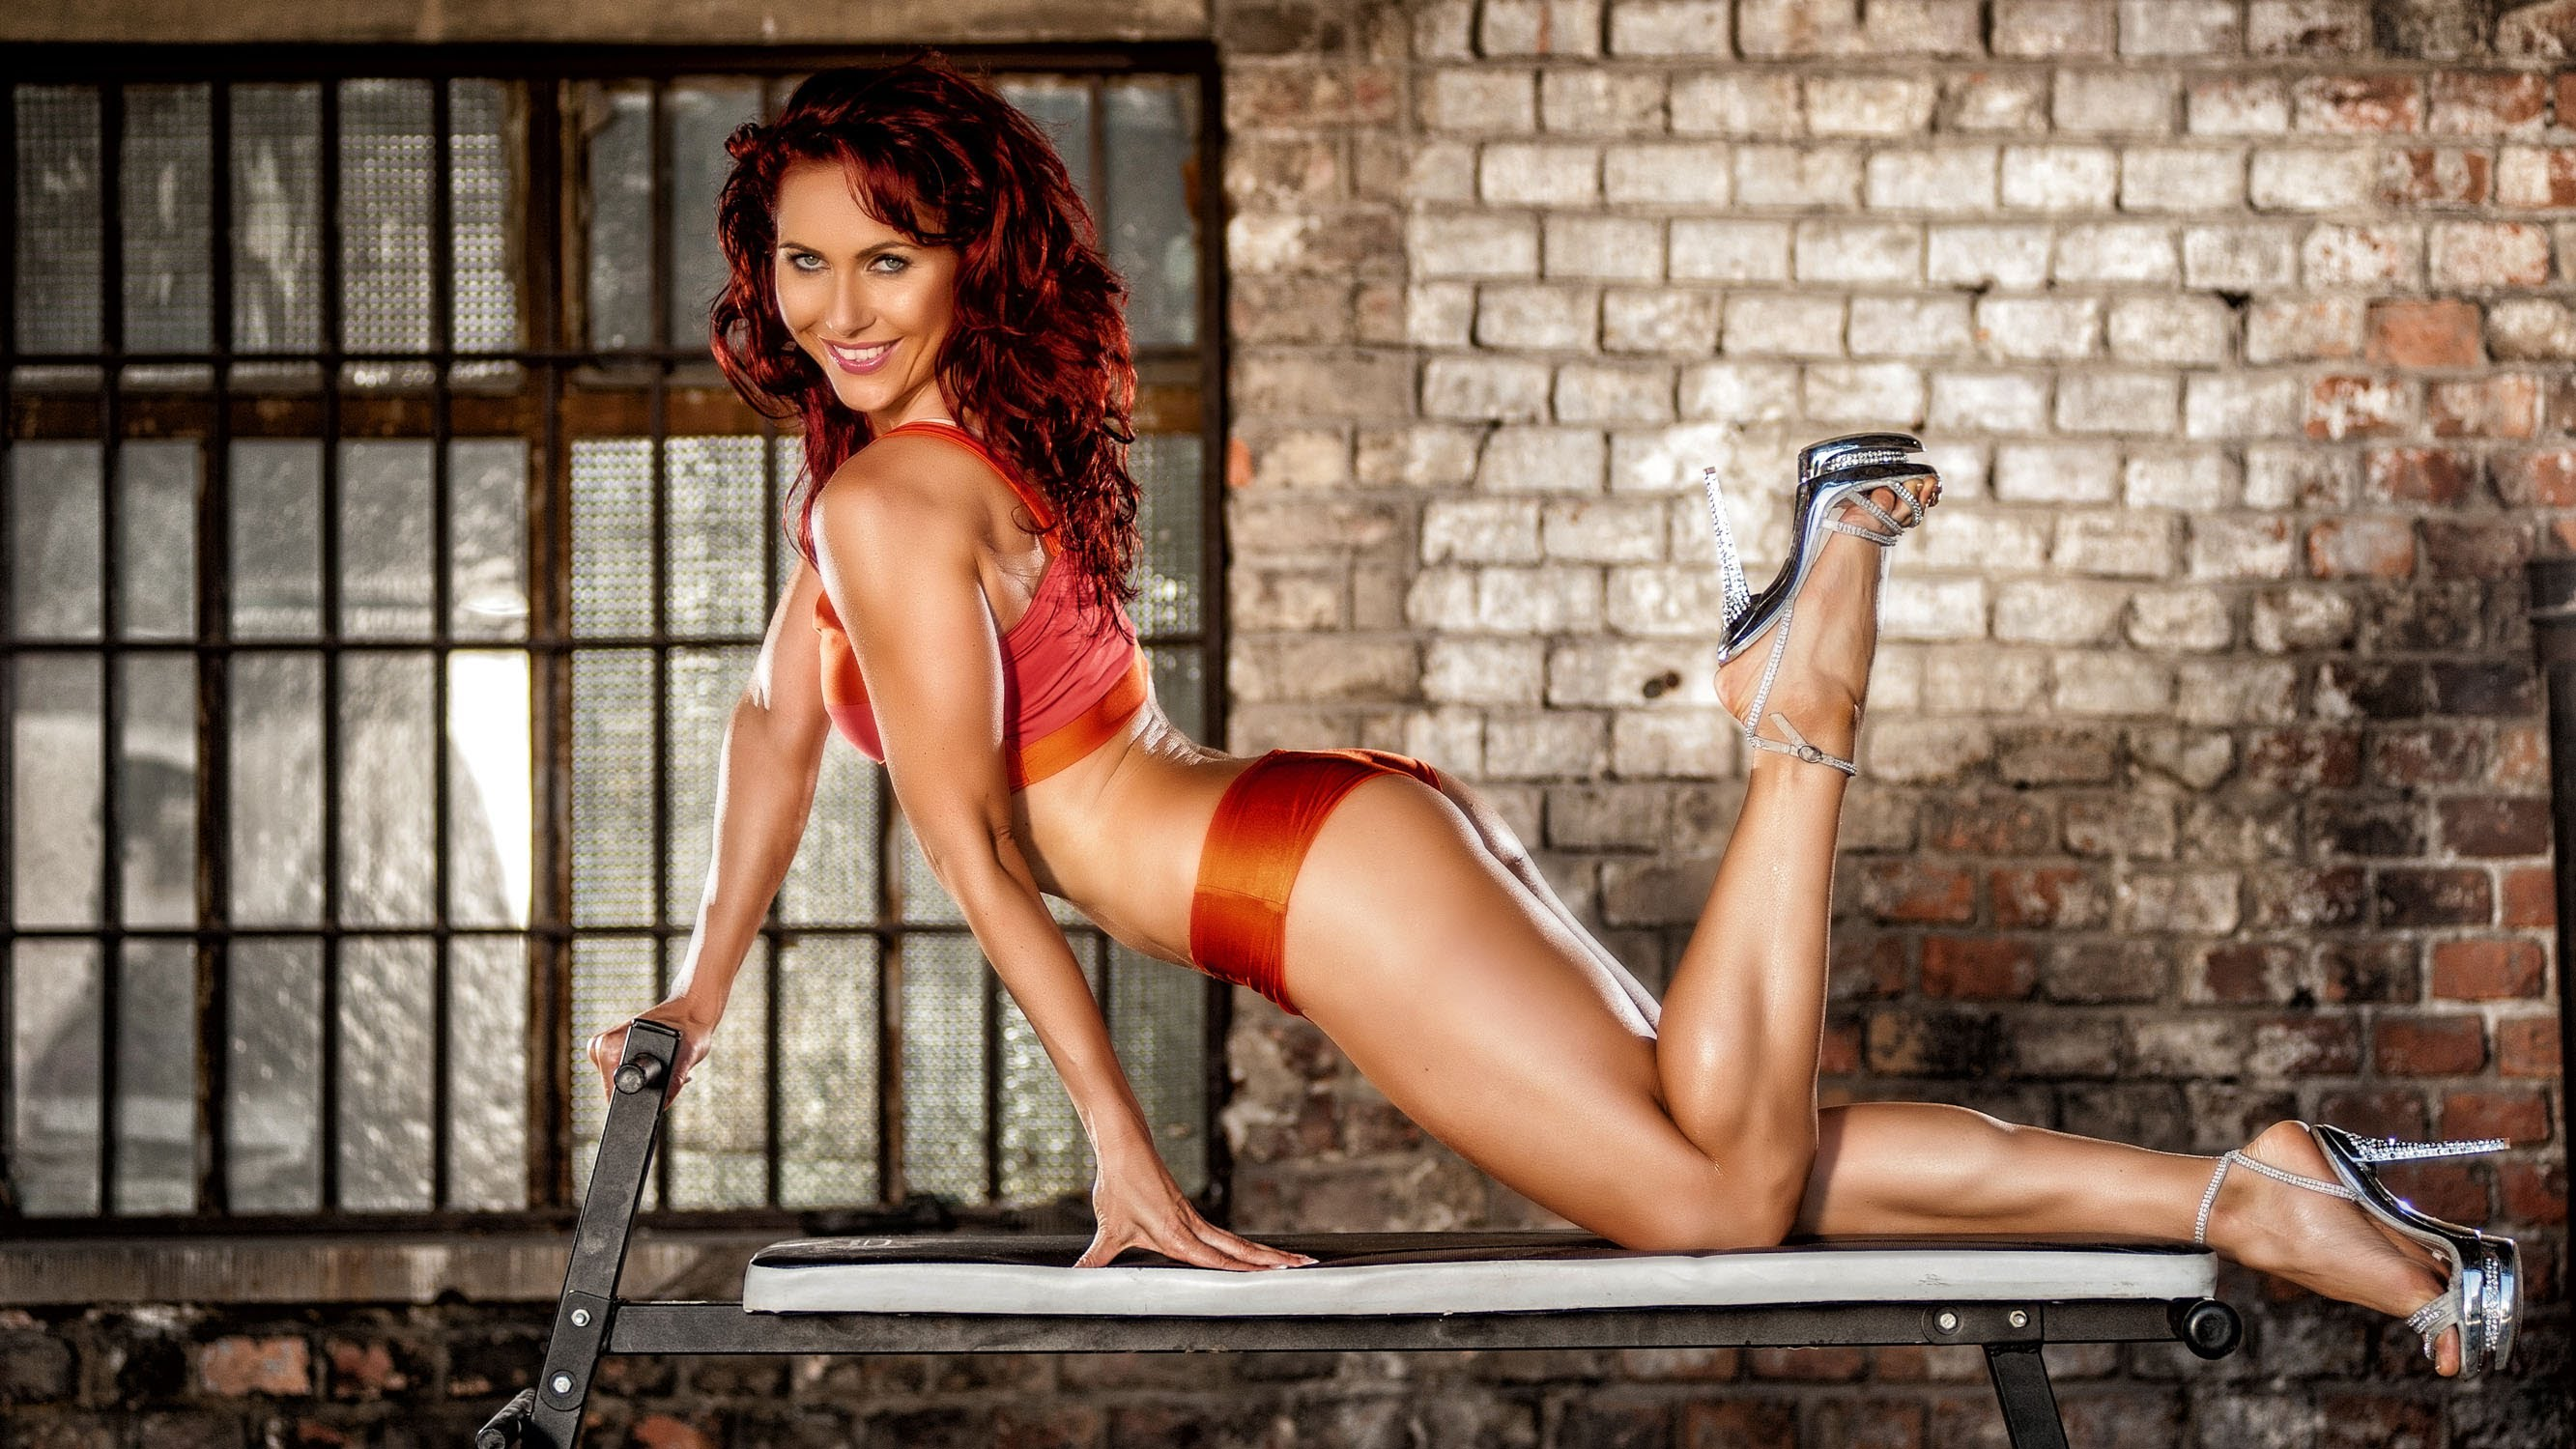 Sandra Grajales – Fitness Photoshoot